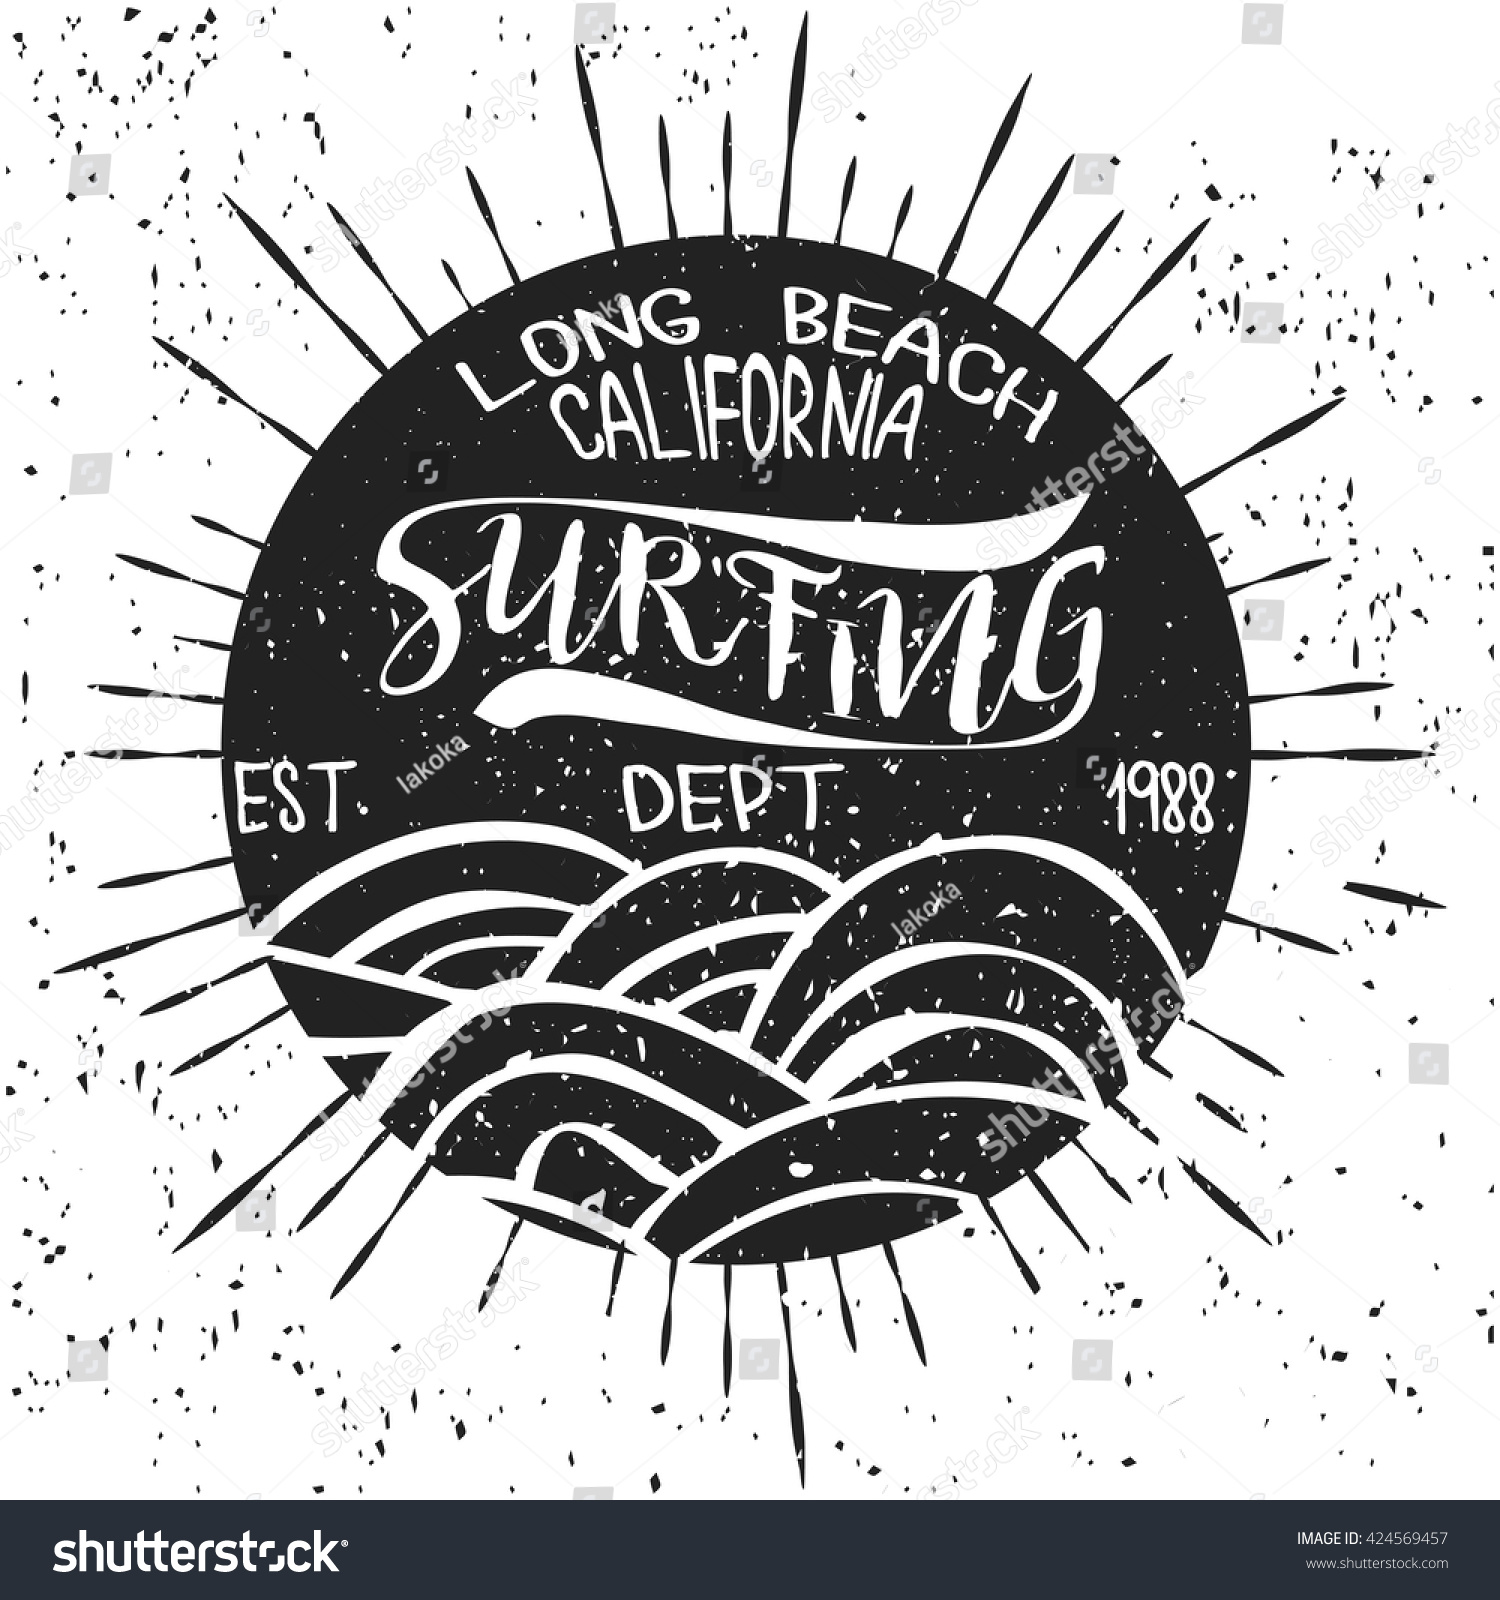 Design t shirts graphic - Surfing California T Shirt Graphic Print Design Surf Shirt Print Stamp California Surfers